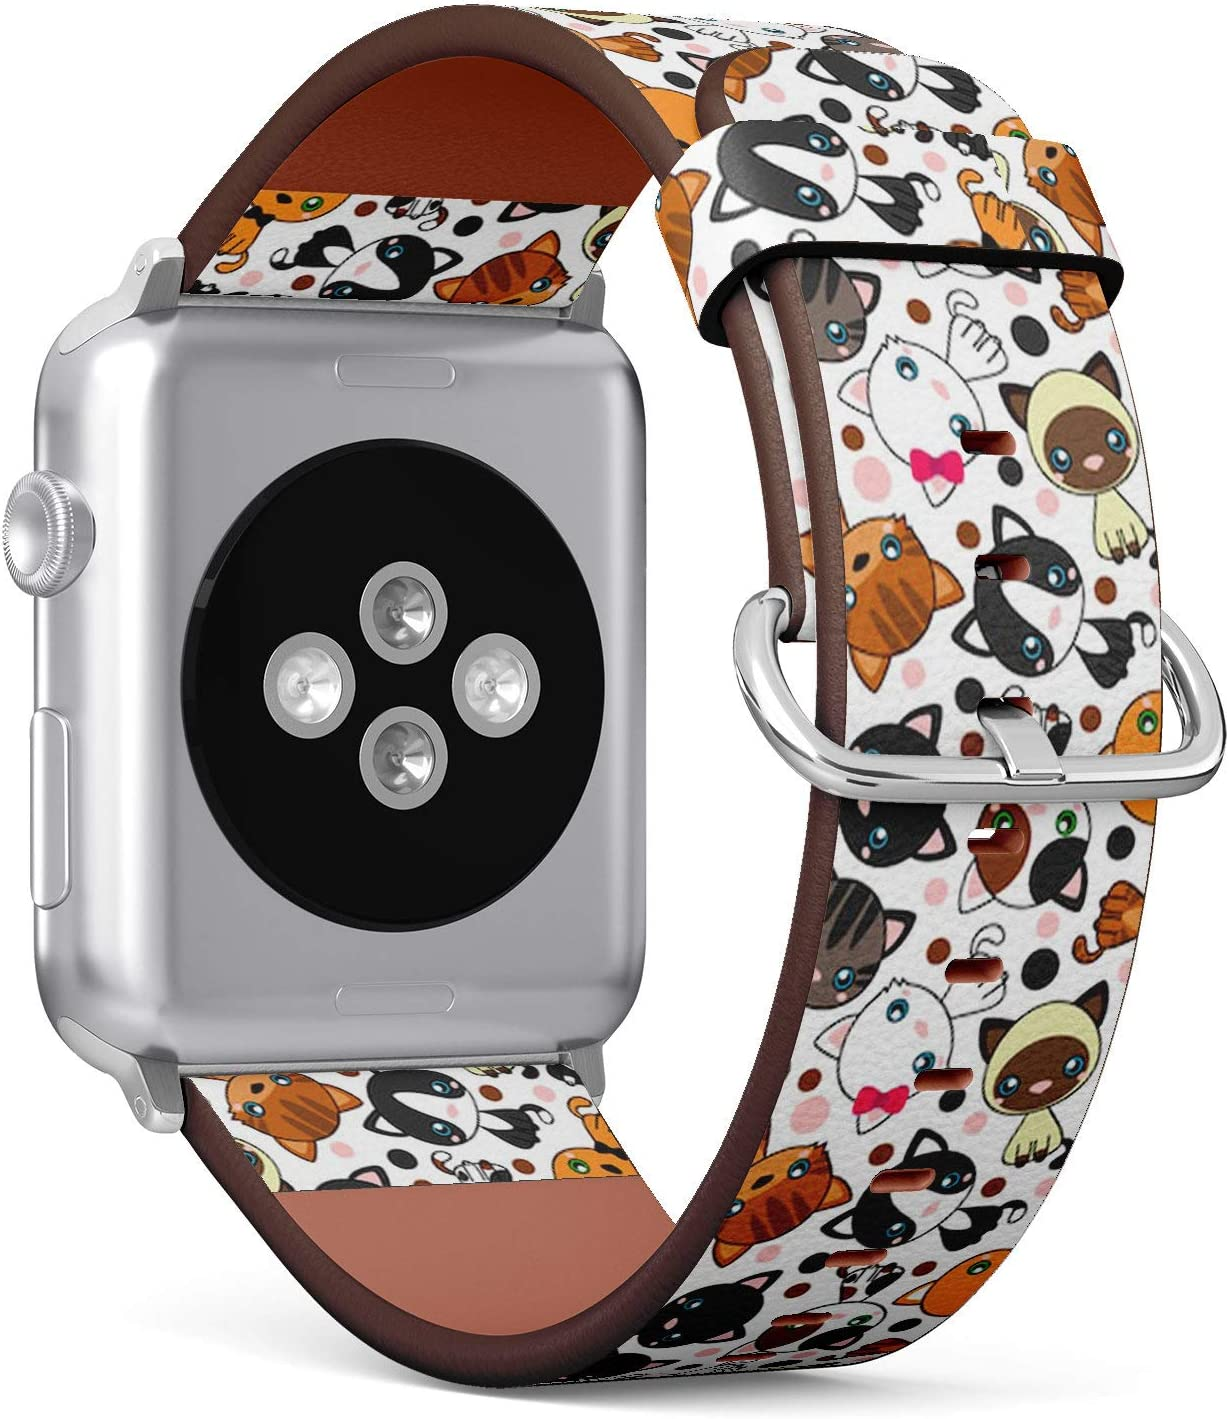 Compatible with Small Apple Watch 38mm & 40mm (All Series) Leather Watch Wrist Band Strap Bracelet with Stainless Steel Clasp and Adapters (Black Cat White)